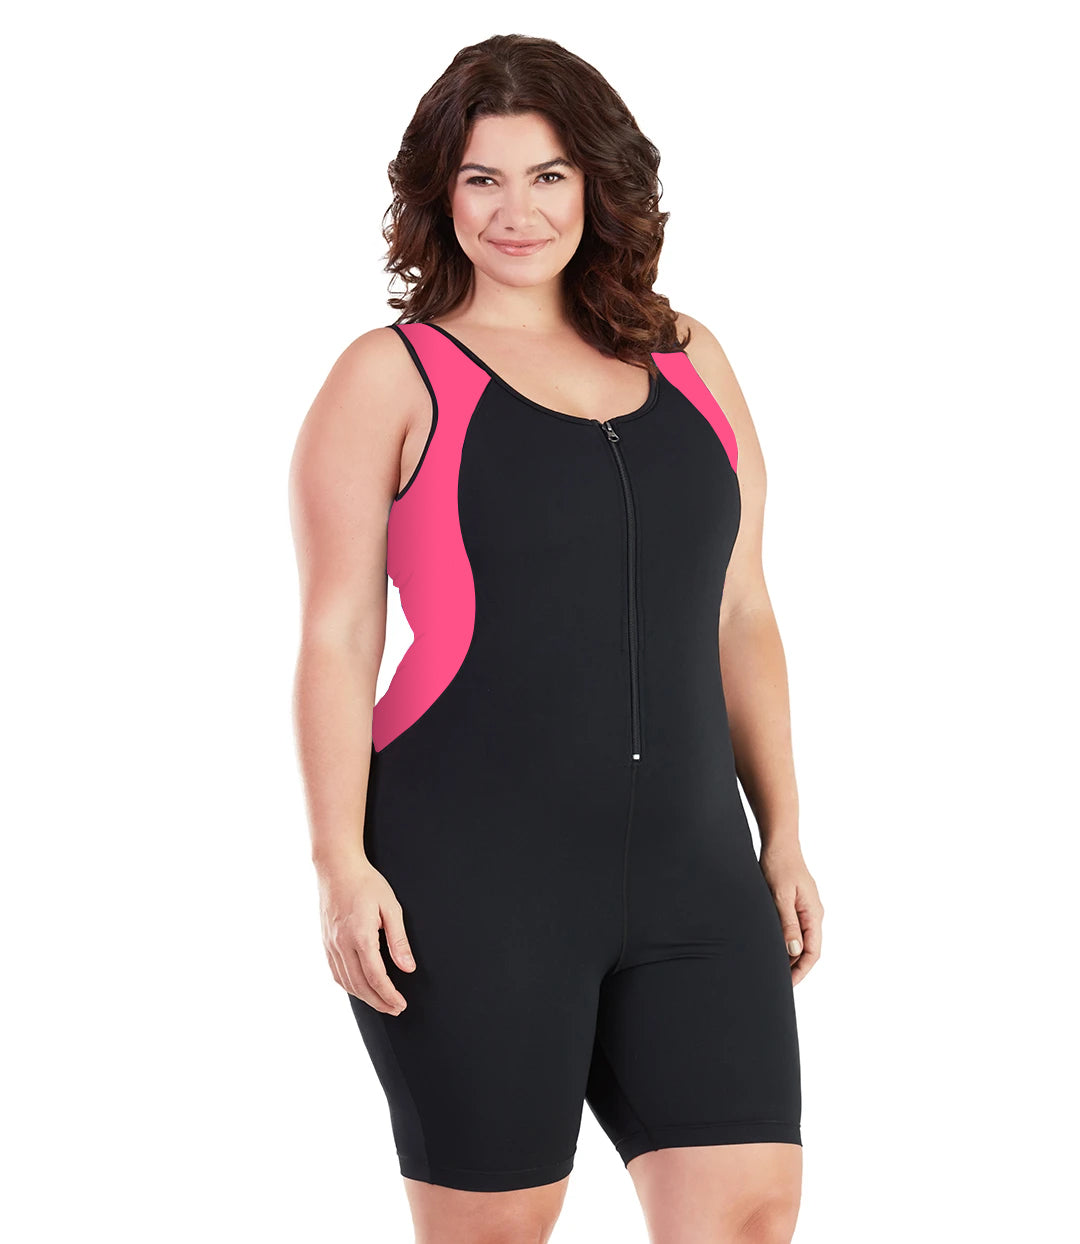 AquaSport Crossback Aquatard Pink and Black-Swim One Piece-SFO Apparel-XL-Pink/Black-JunoActive